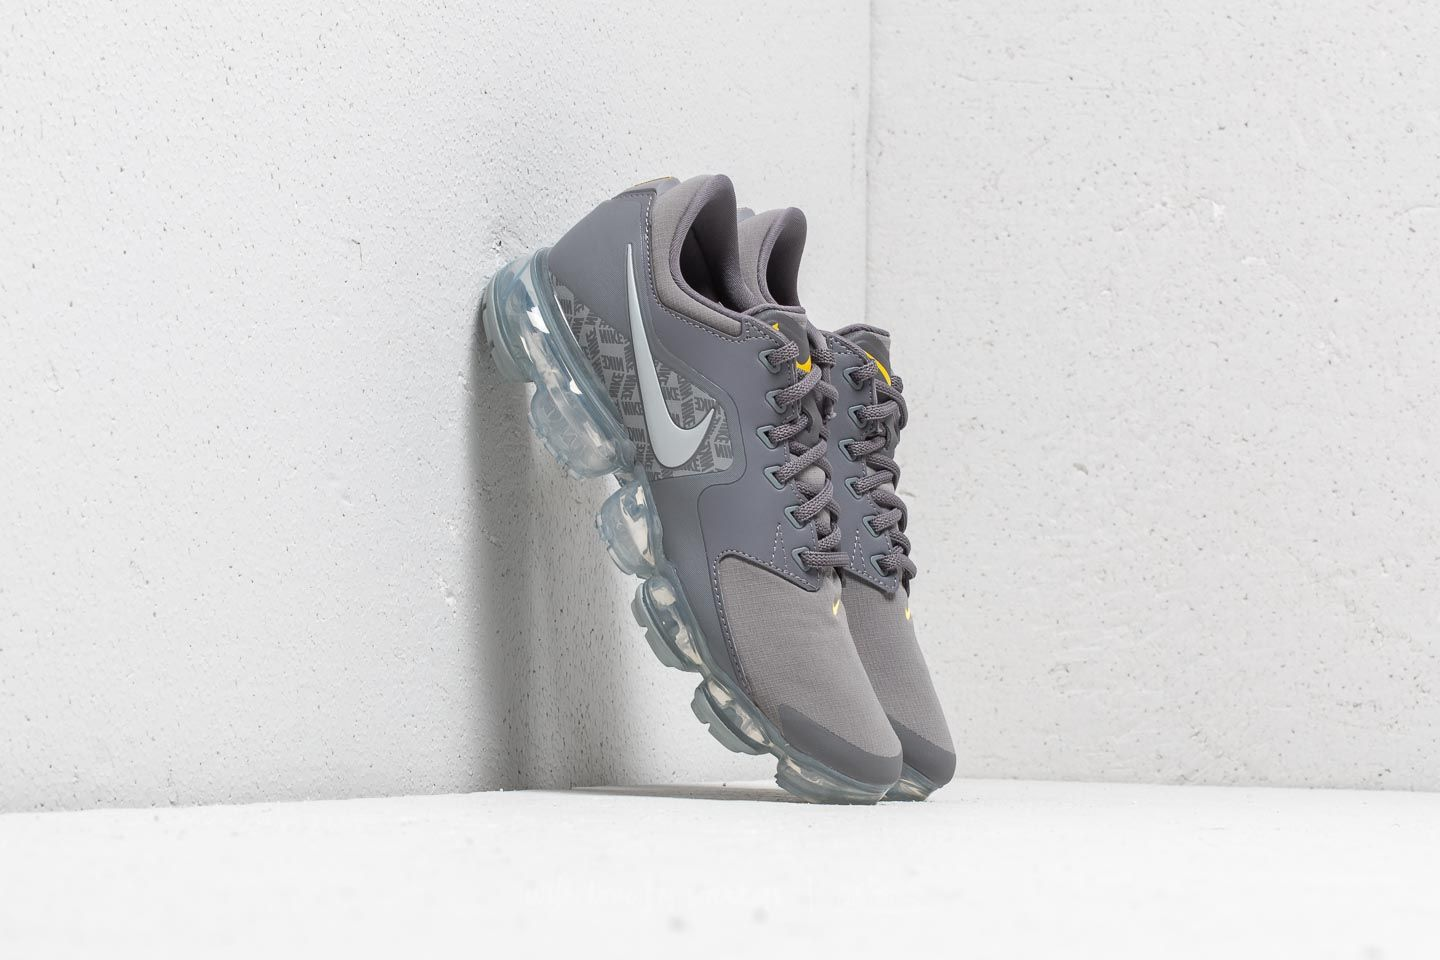 Absolute Steals In The Nike UK SALE